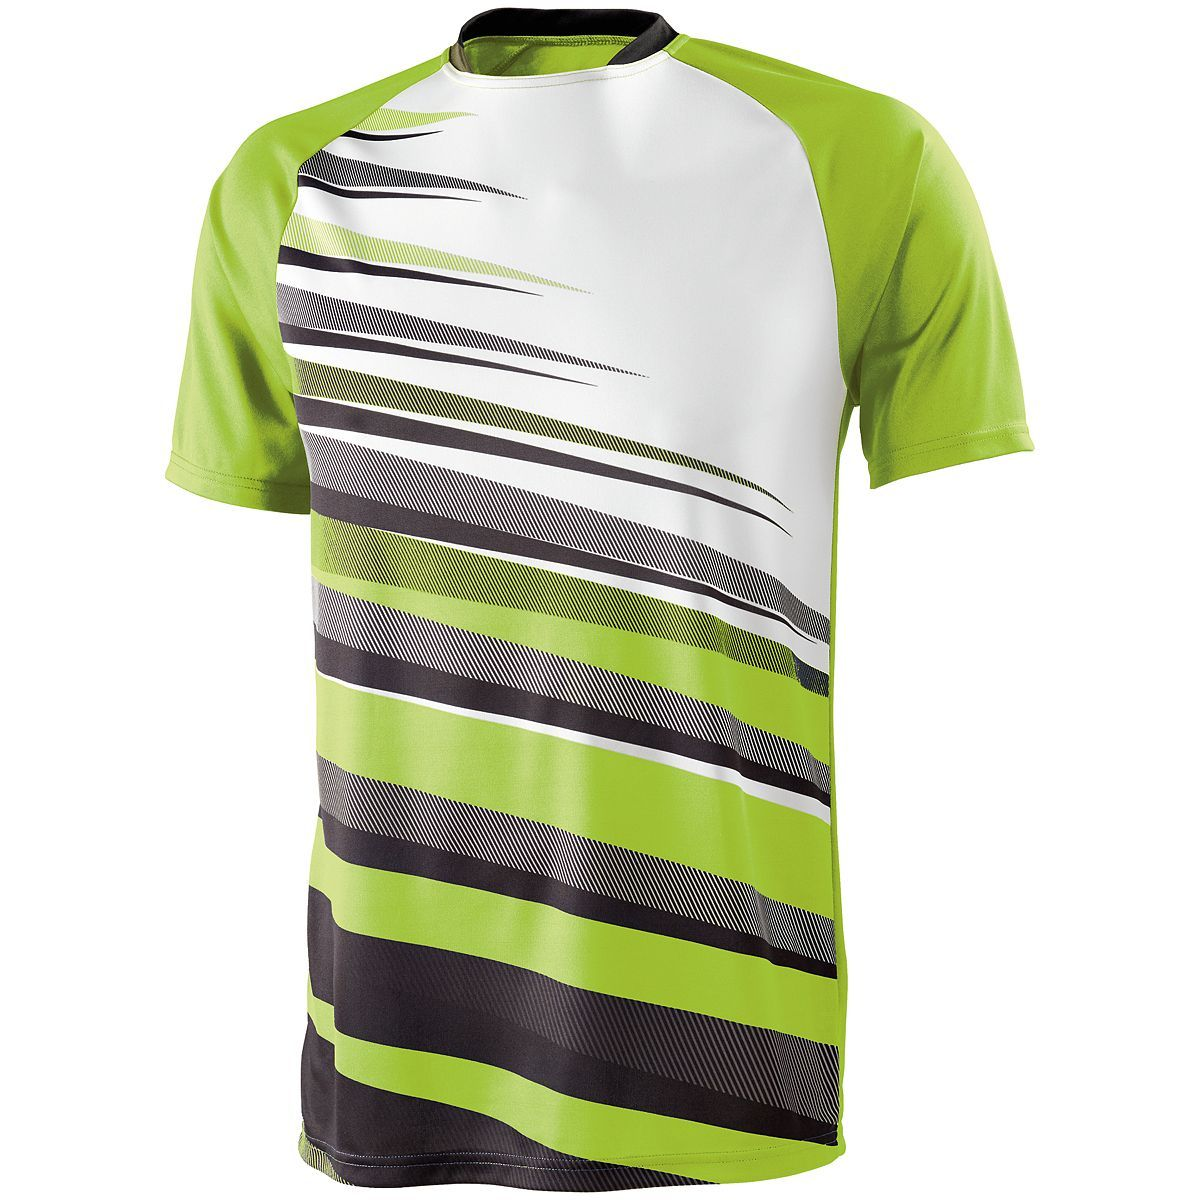 YOUTH GALACTIC JERSEY